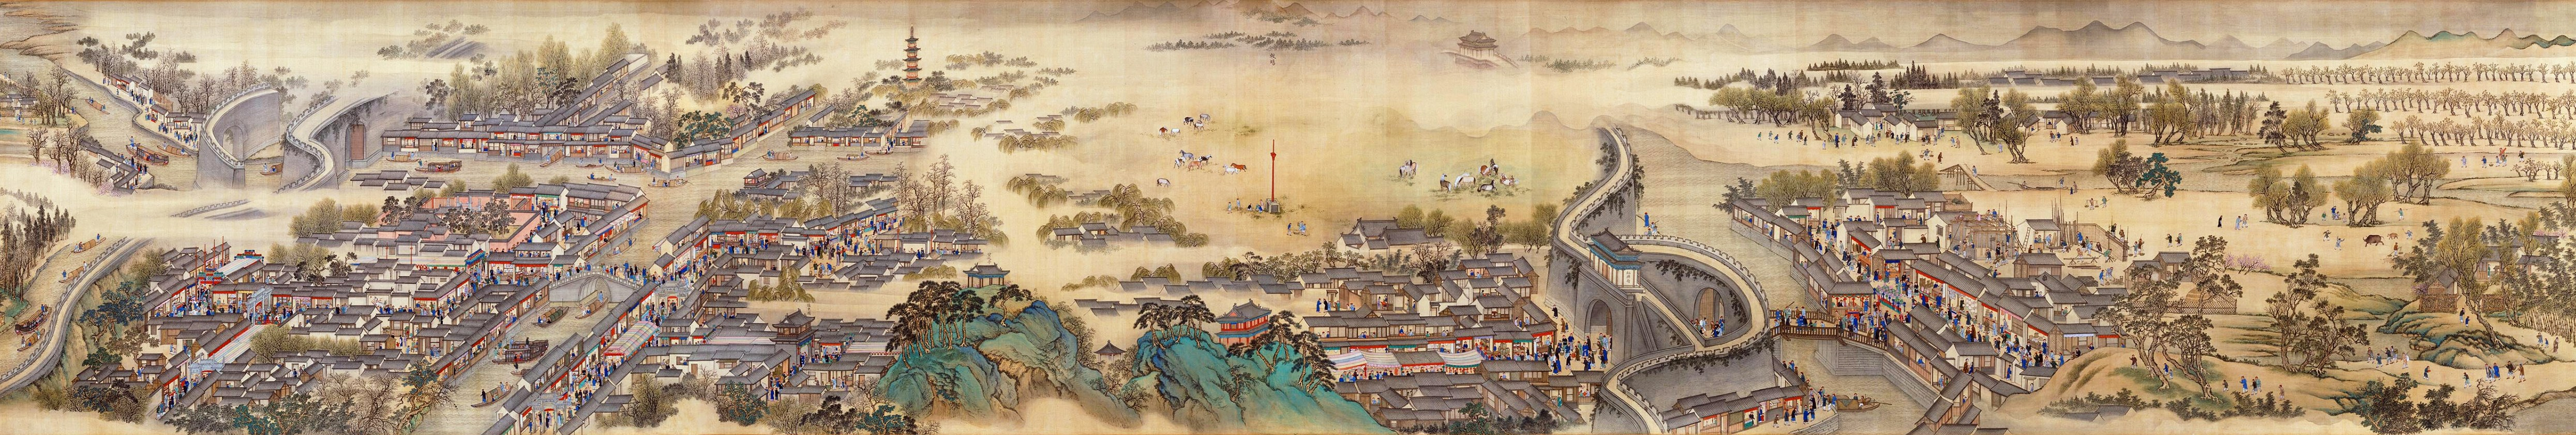 an introduction to the life of emperor kang hsi from china A remarkable re-creation of the life of k'ang-hsi, emperor of the manchu dynasty from 1661-1722, assembled from documents that survived his reign.